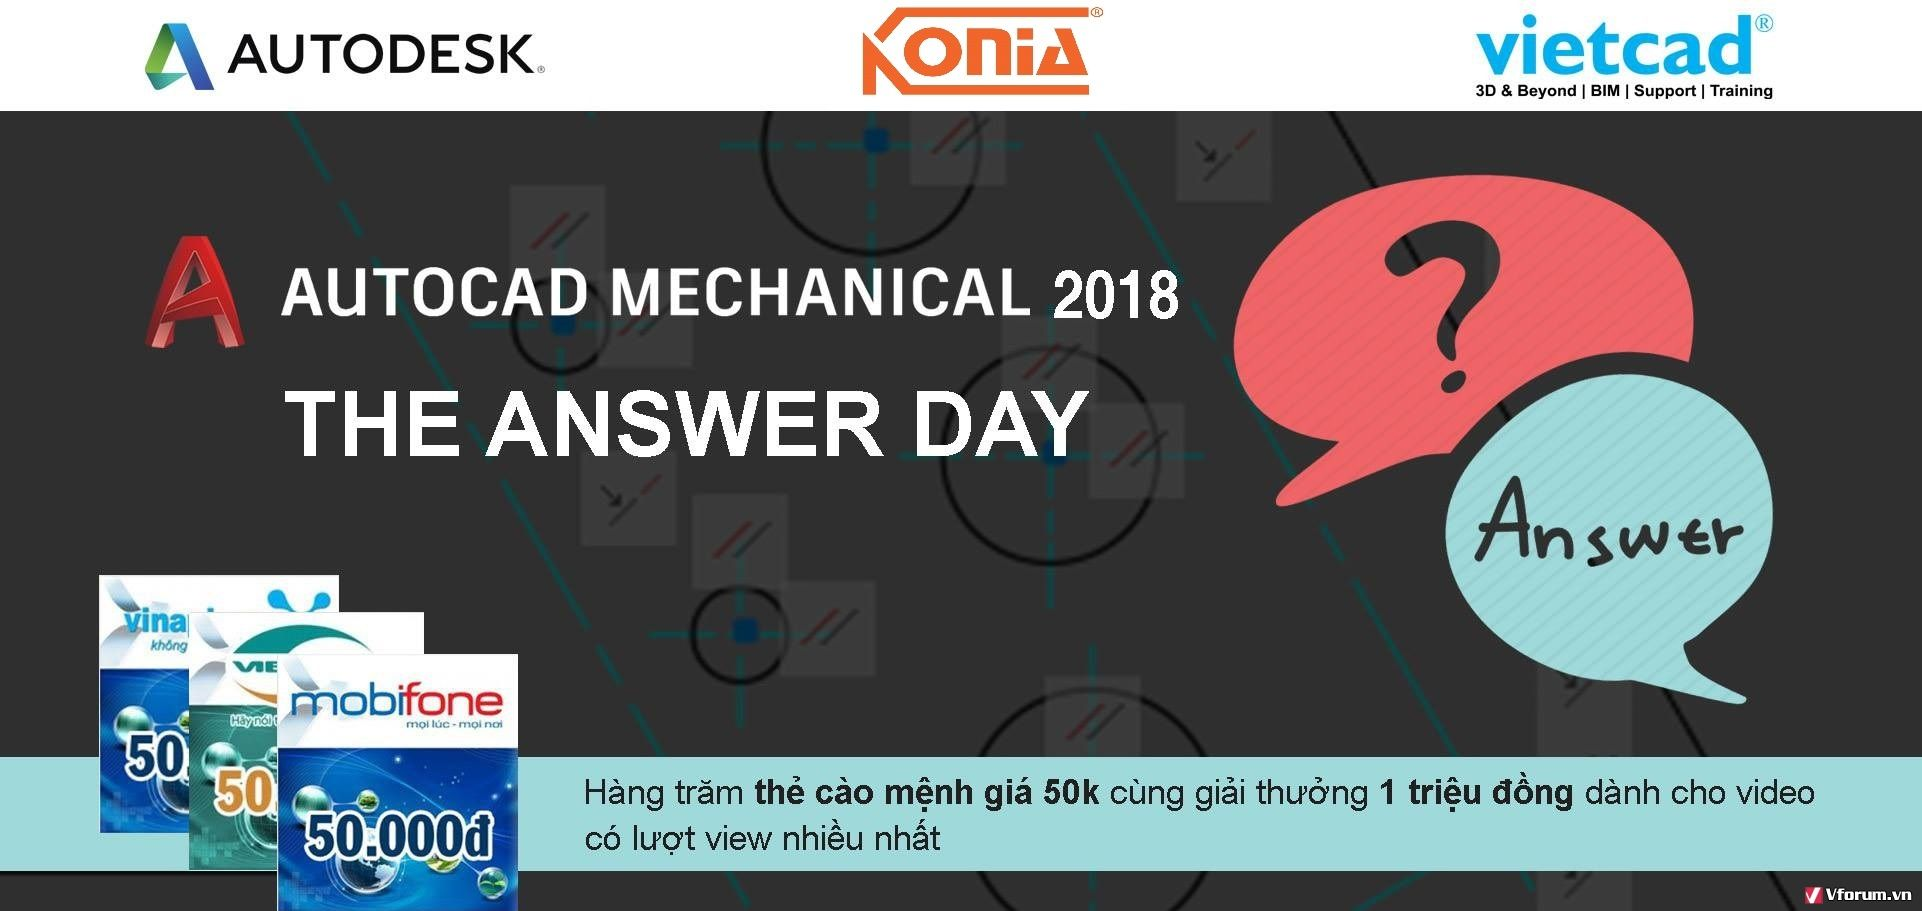 AUTOCAD MECHANICAL 2018 - THE ANSWER DAY